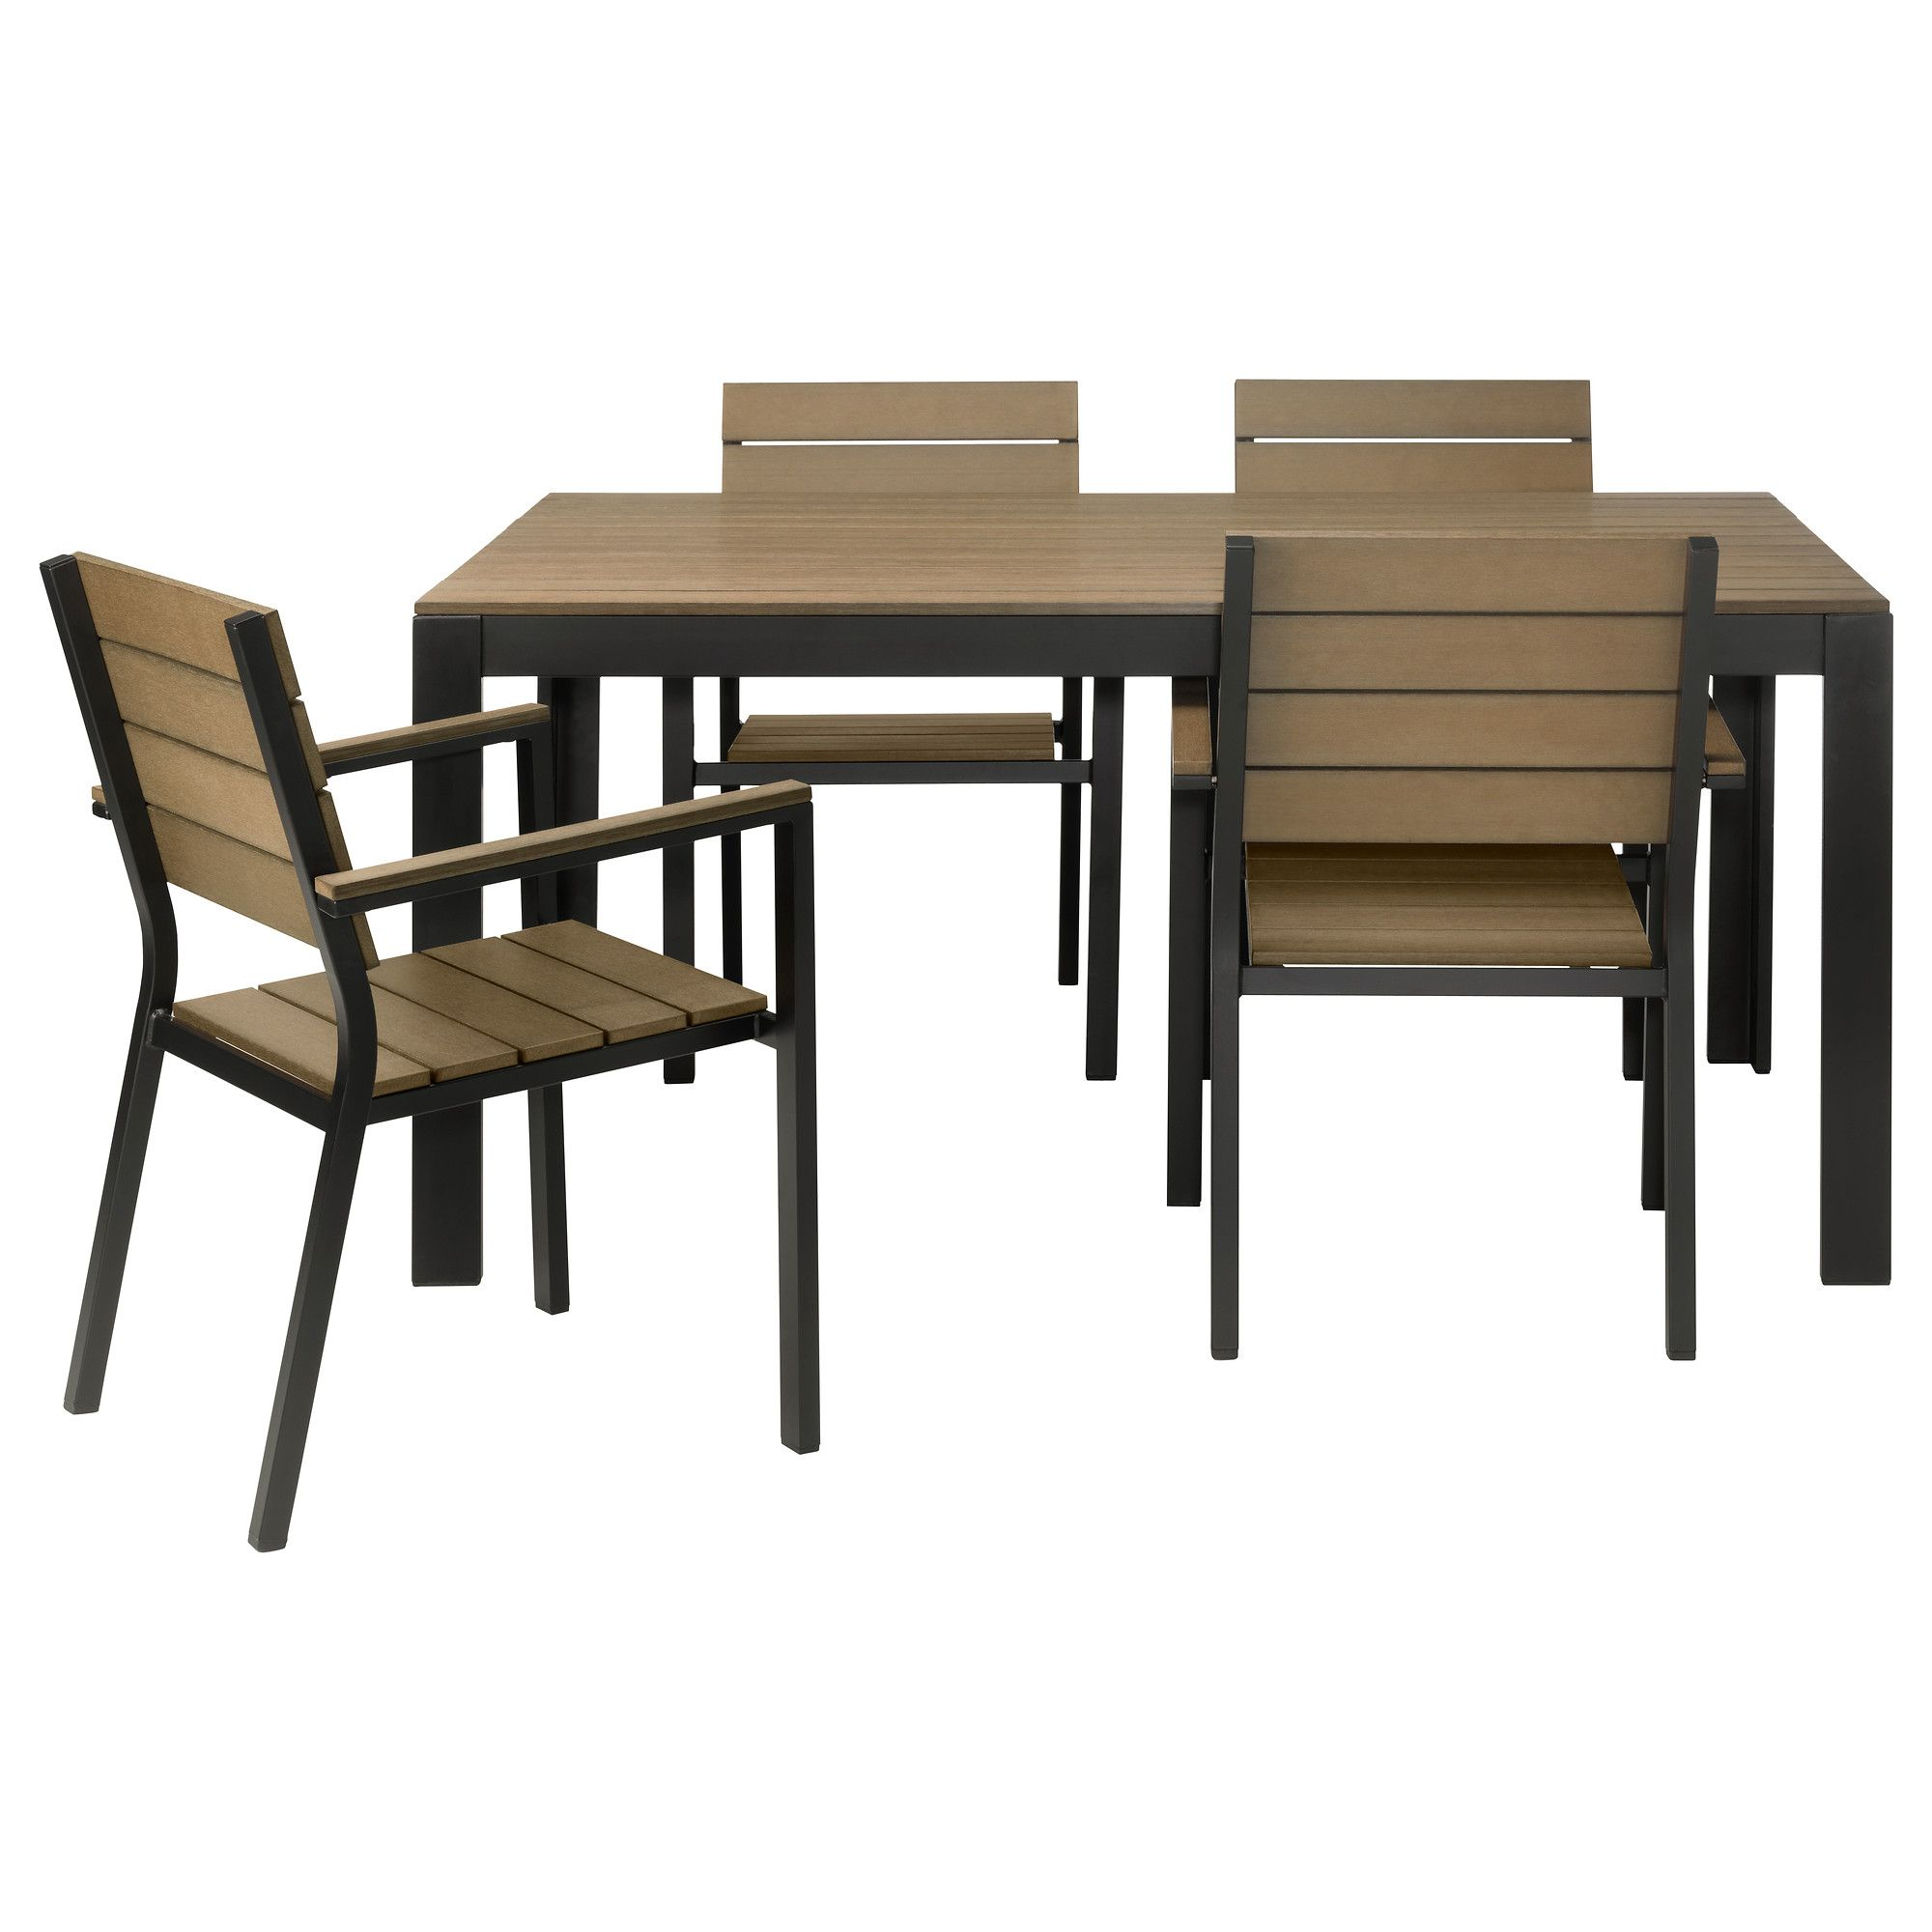 $395 FALSTER Table and 4 armchairs black brown IKEA Dimensions